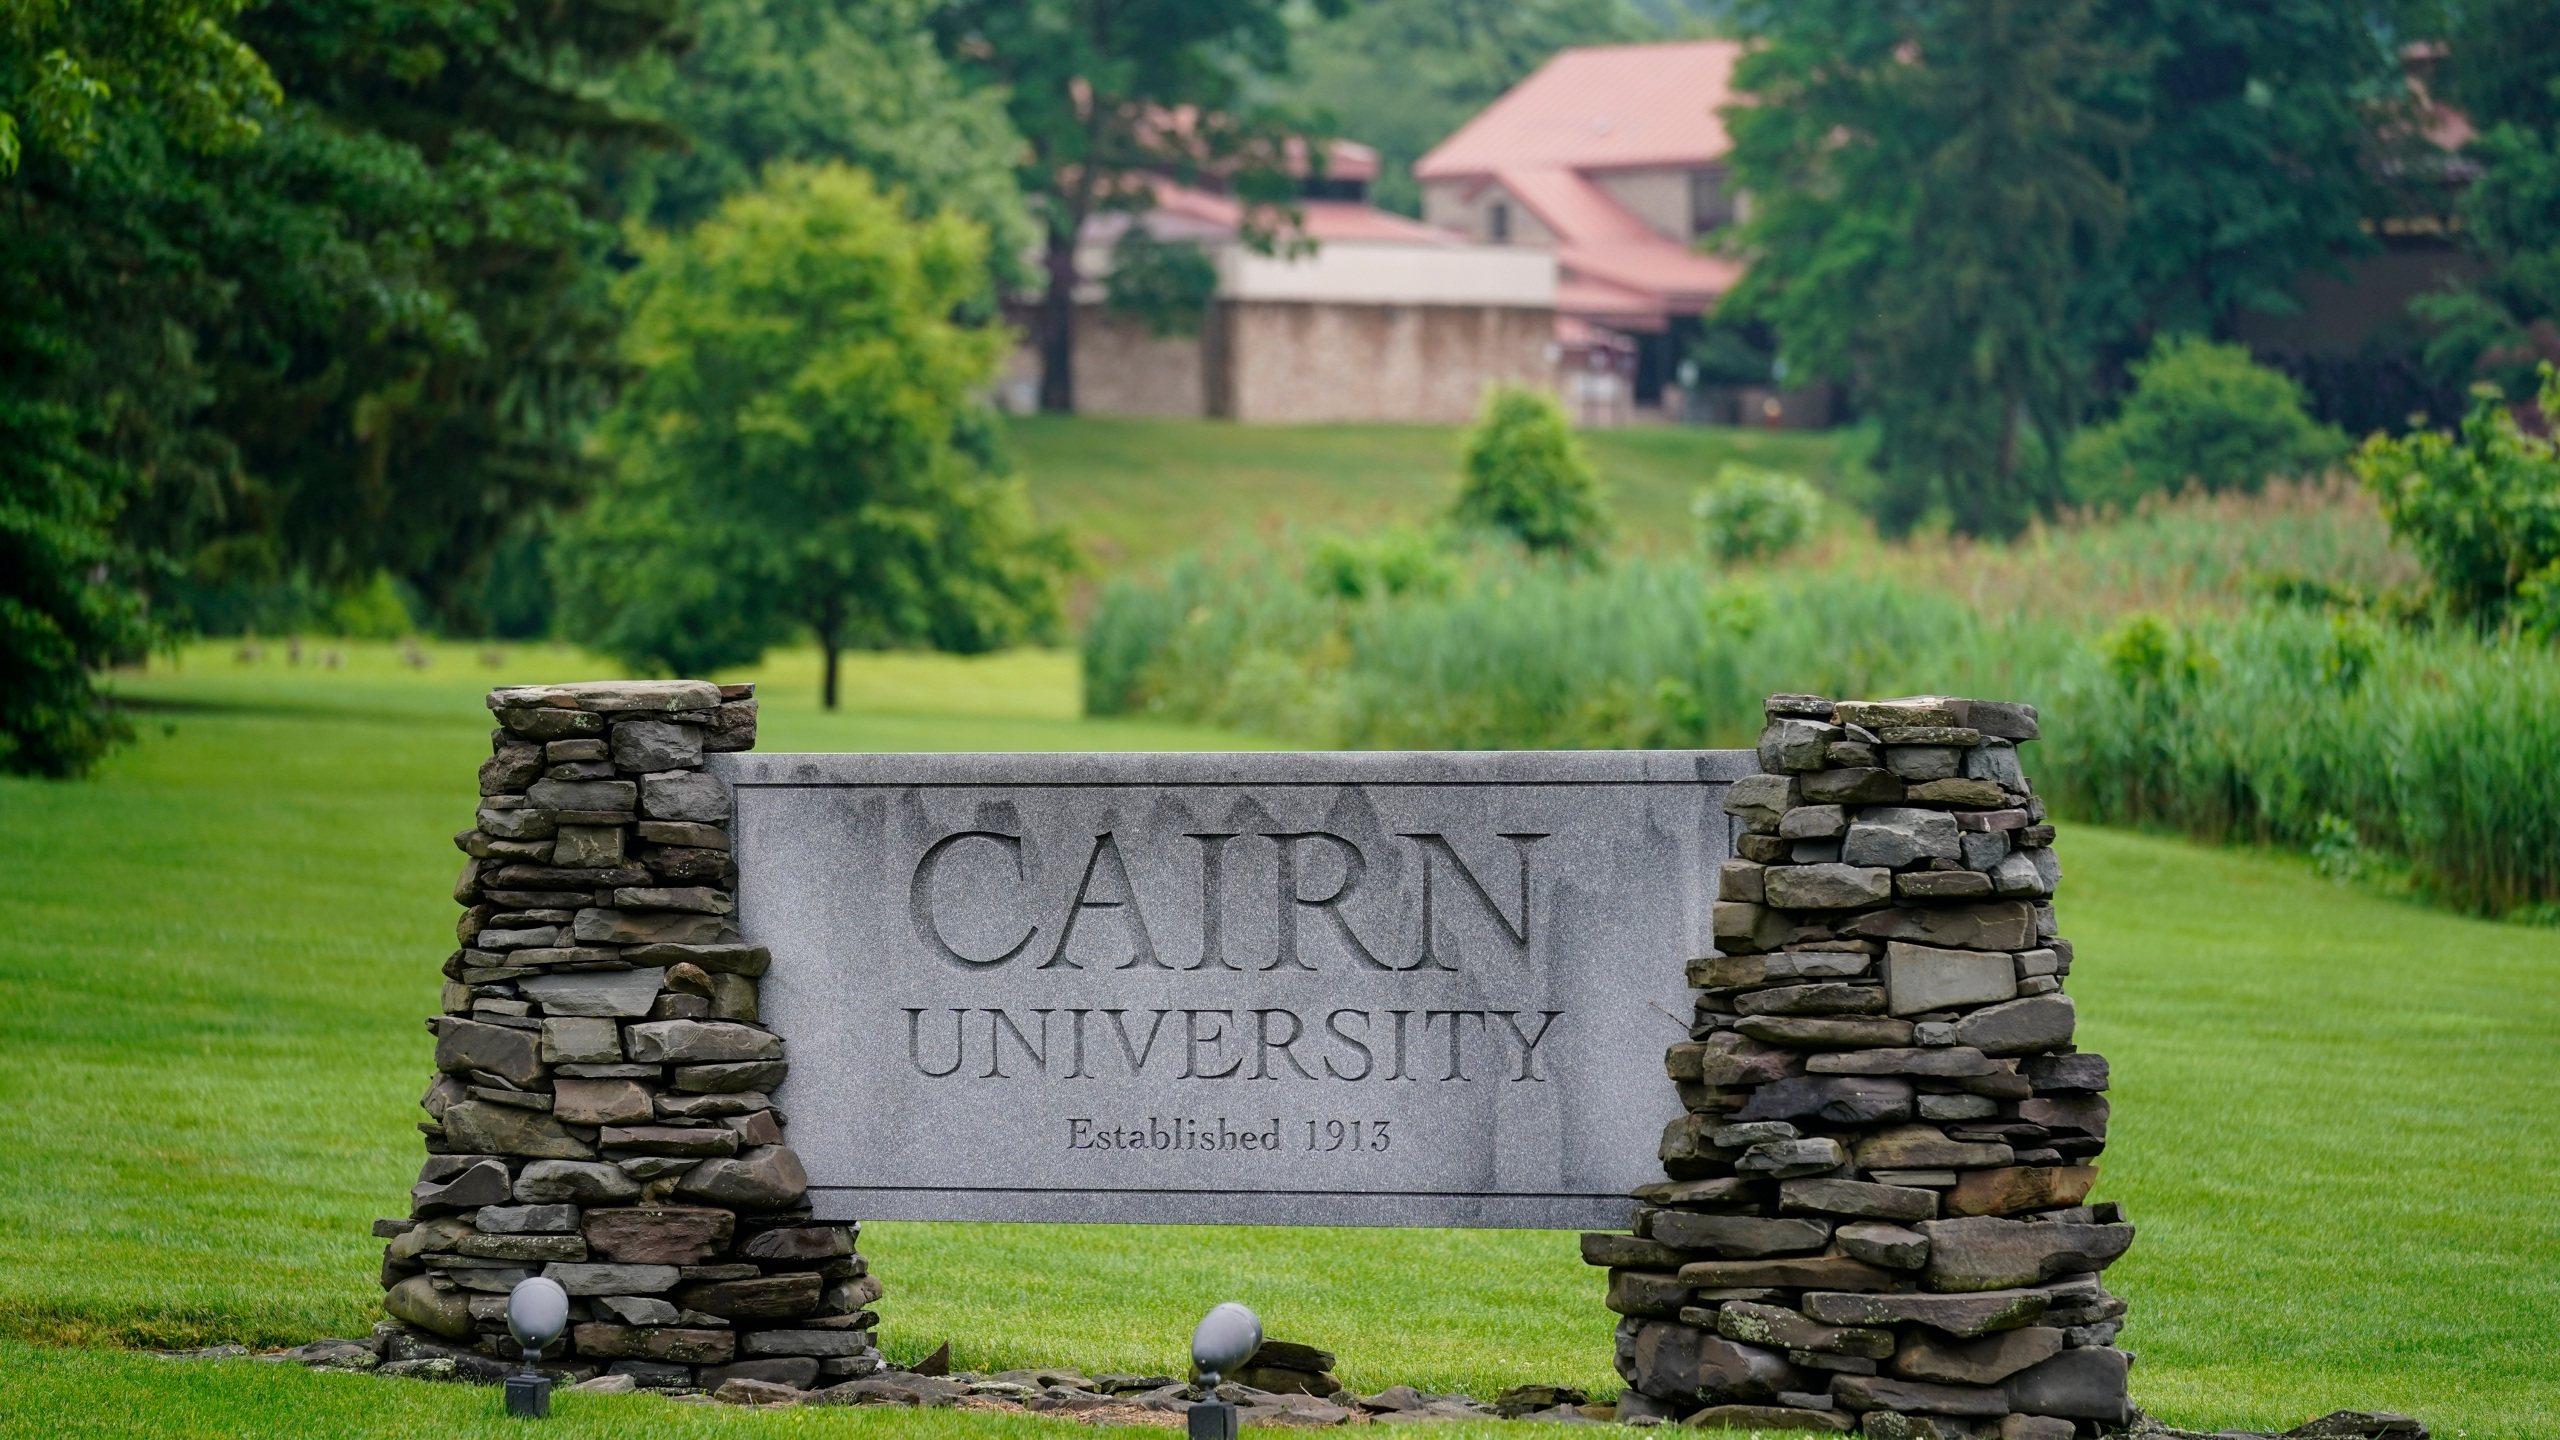 A sign for Cairn University is displayed at the campus in Langhorne, Pa., Friday, June 4, 2021. The Christian university outside of Philadelphia has shuttered its highly-regarded social work degree program partly because university officials said the national accrediting agency was attempting to impose values regarding sexuality and gender that did not align with the university's religious mission. (AP Photo/Matt Rourke)